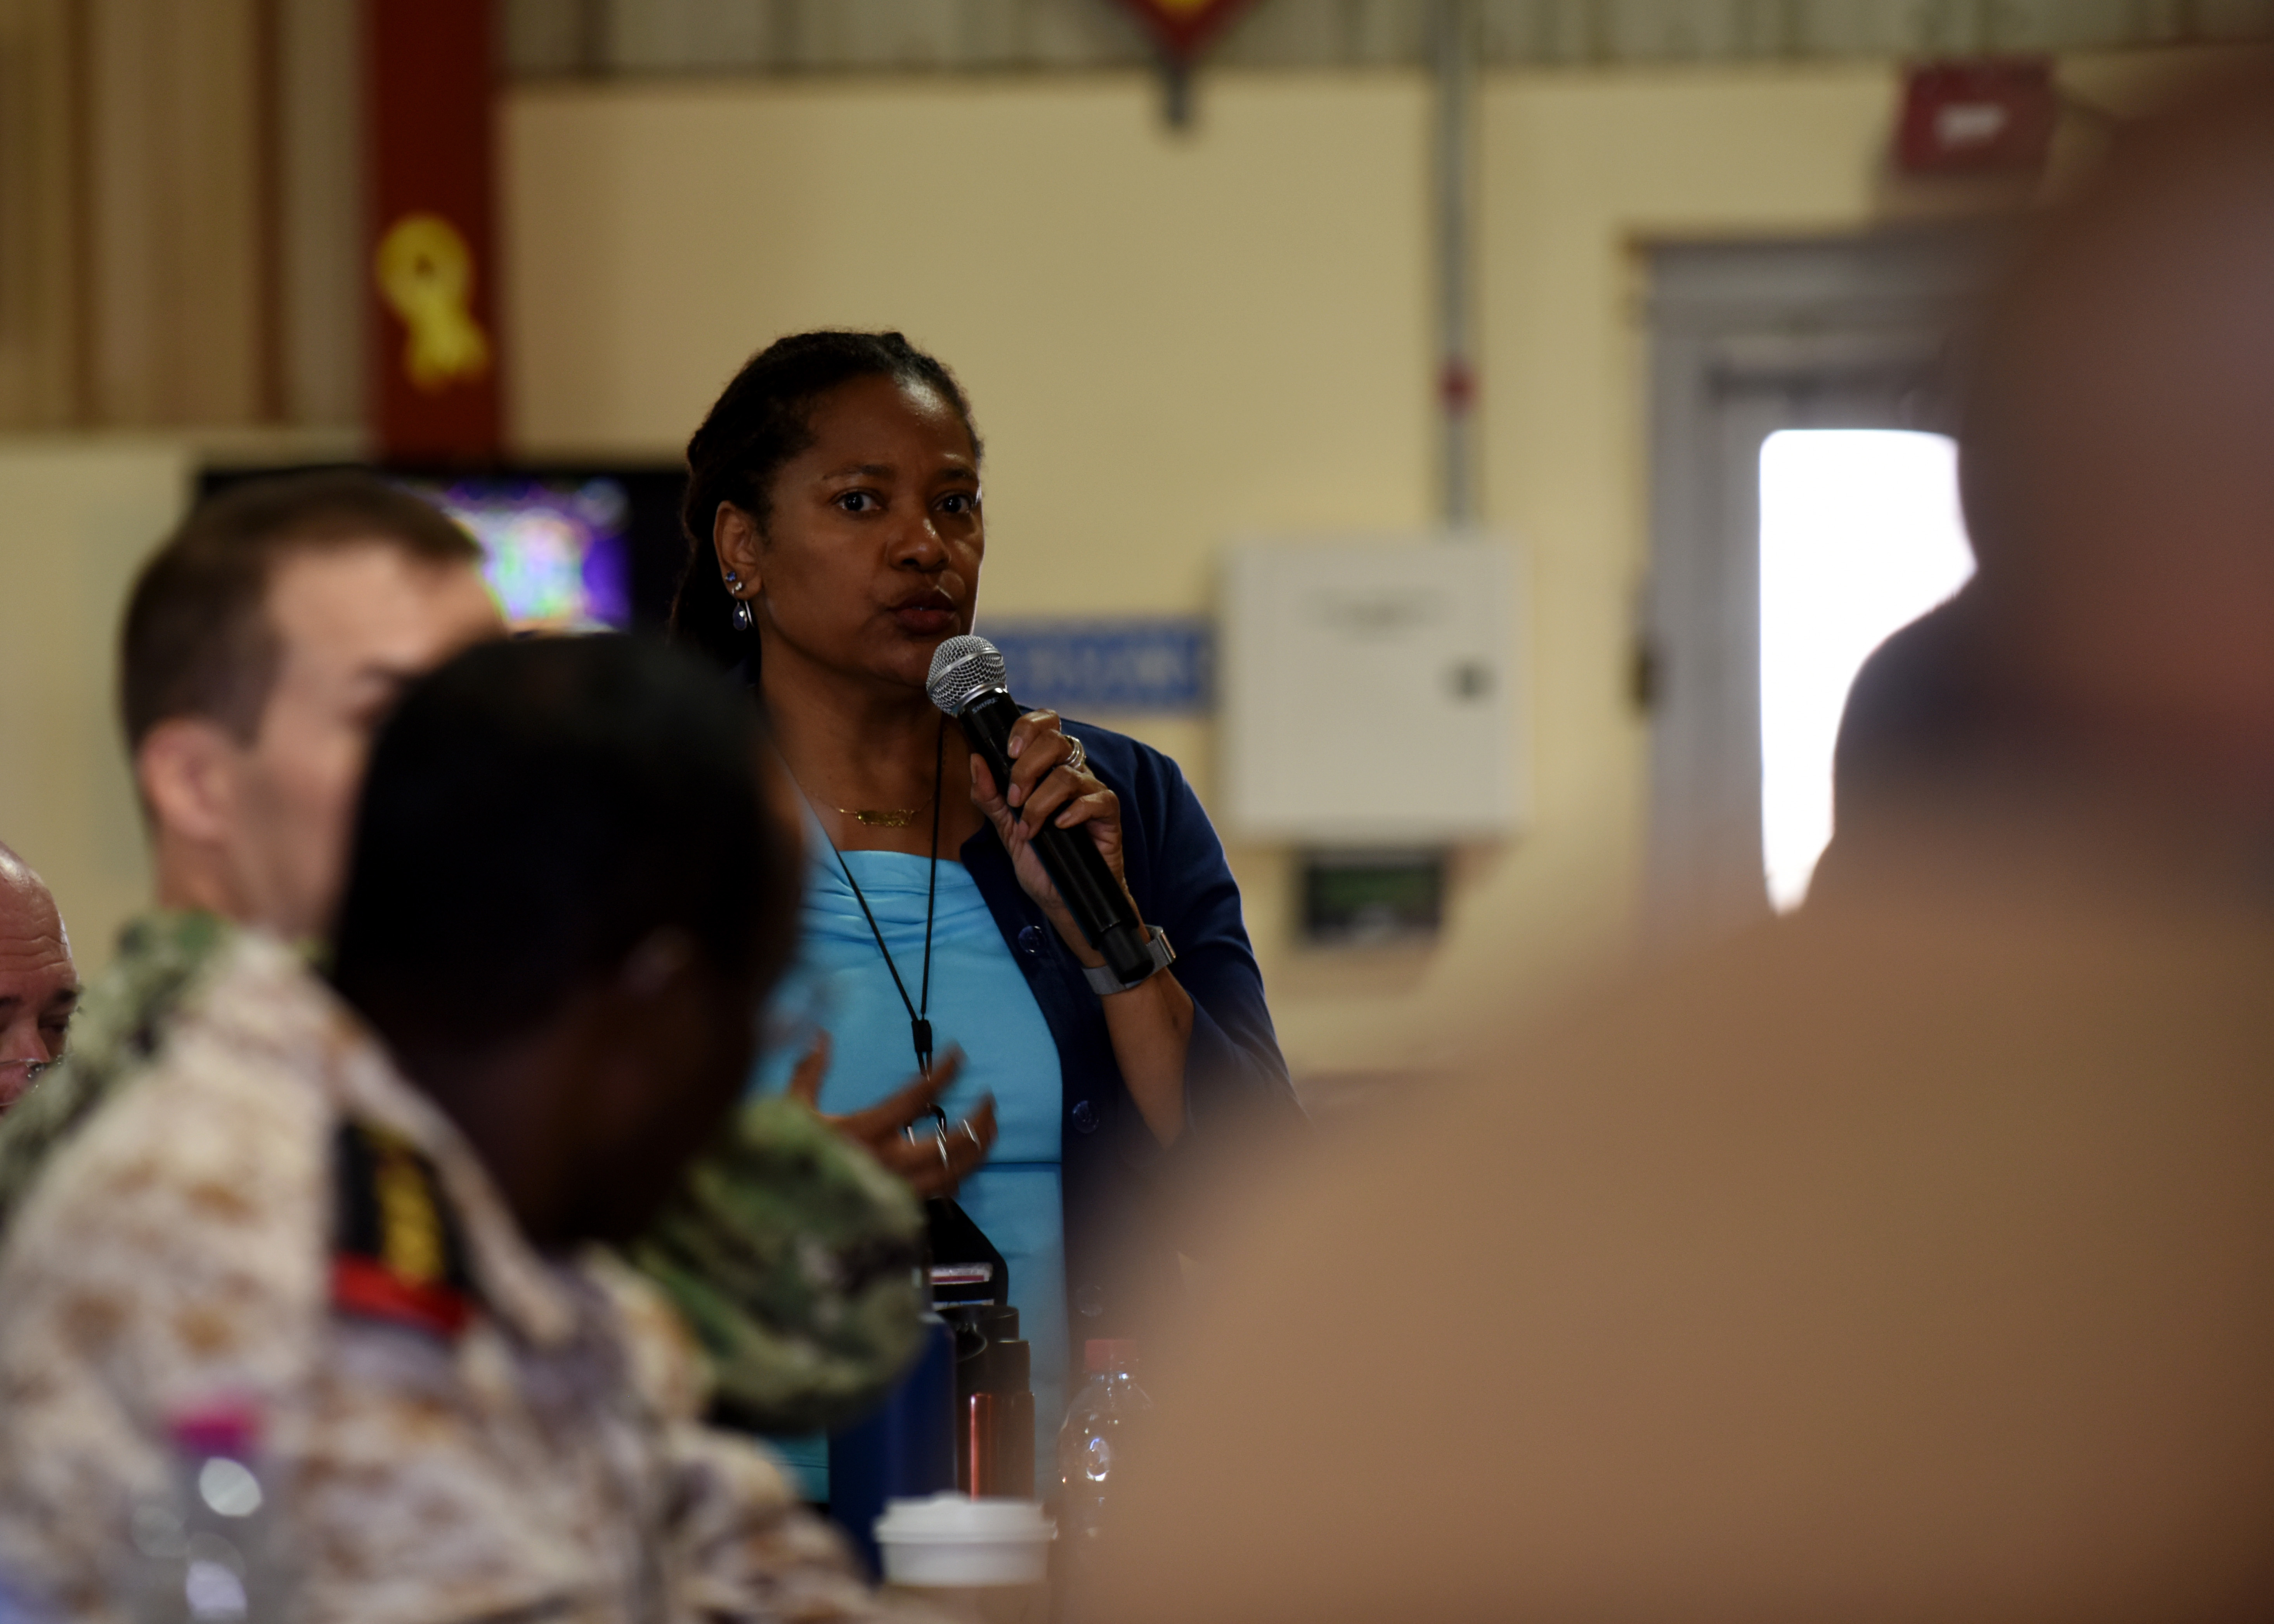 Rabihah Mateen, U.S. Agency International Development country representative for Djibouti, speaks during an Emergency Response Information Exchange multinational discussion, Feb. 12, 2019 at Camp Lemonnier, Djibouti. The three-day discussion included representatives from the U.S., Japan, Germany, Italy, France, Spain and Djibouti, who identified various capabilities each nation can offer during the event of a natural disaster in Djibouti, including communication equipment, emergency vehicles and medical support. (U.S. Air Force photo by Staff Sgt. Franklin R. Ramos)